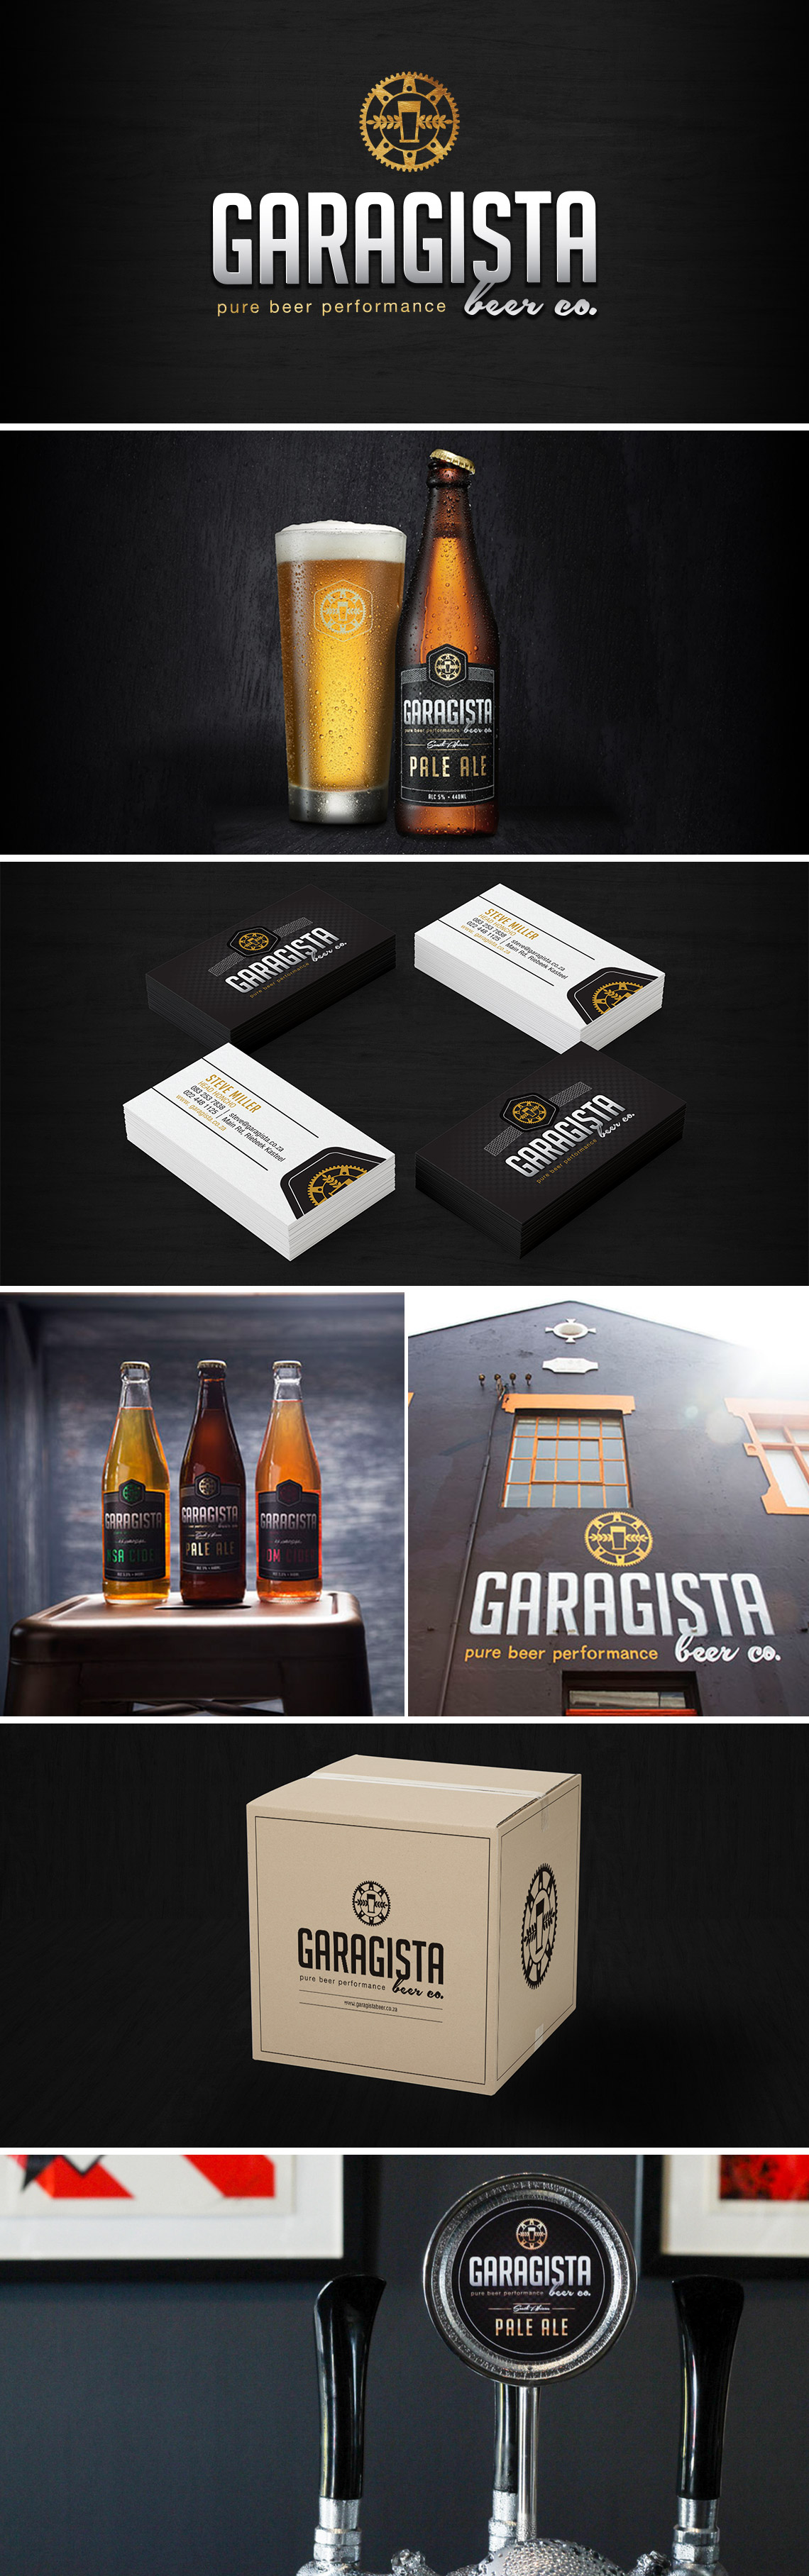 Logo and Branding Garagista Beer Co.